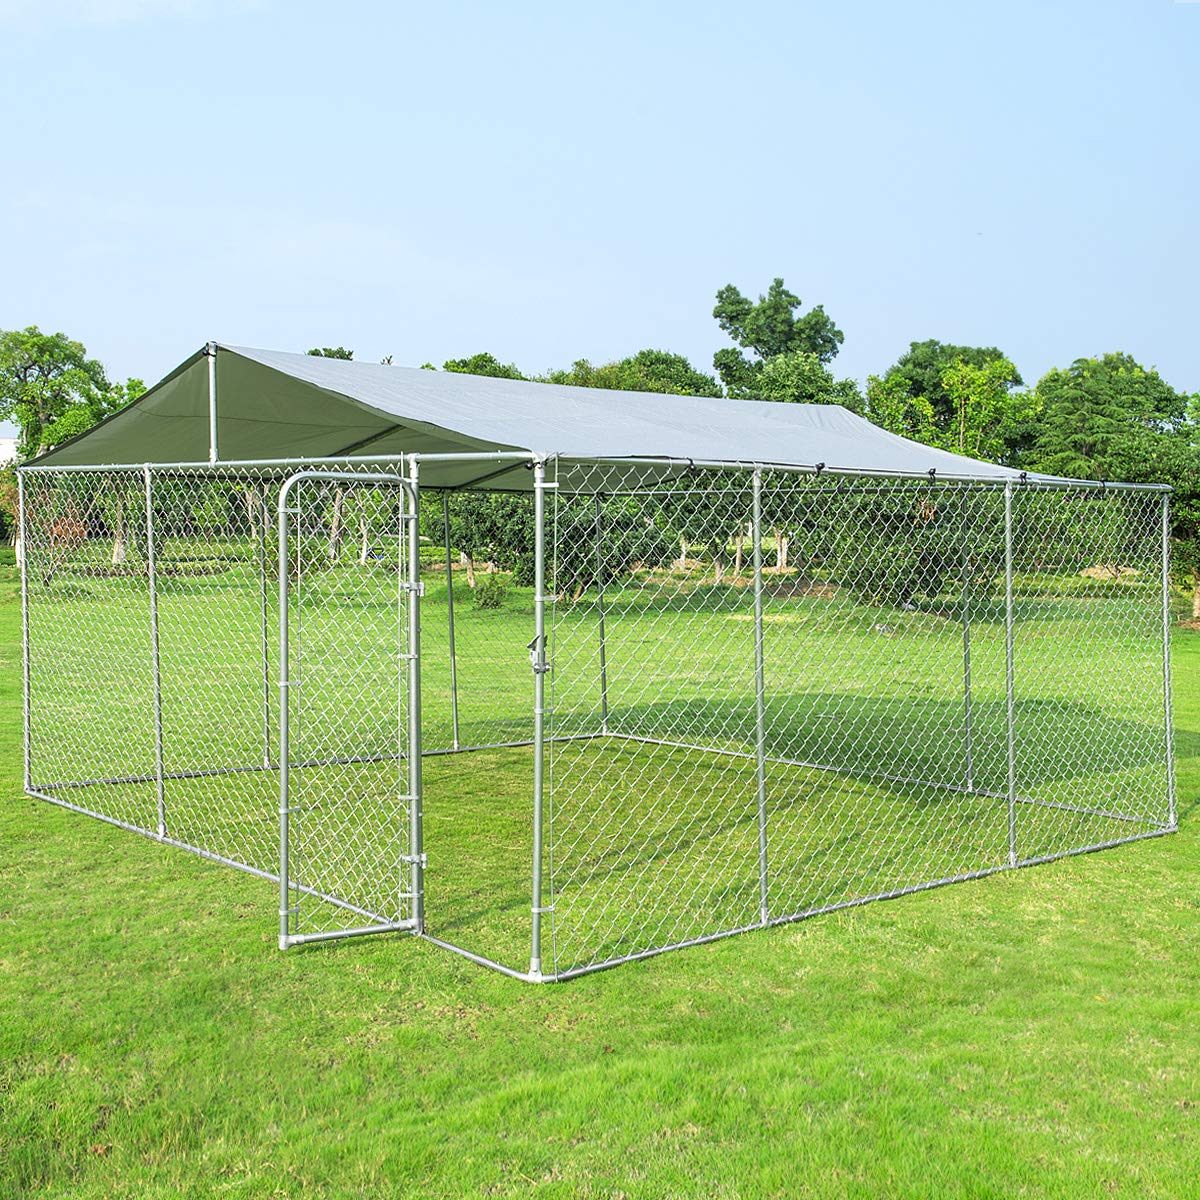 Giantex Large Outdoor Dog Kennel with Shade Roof Cover